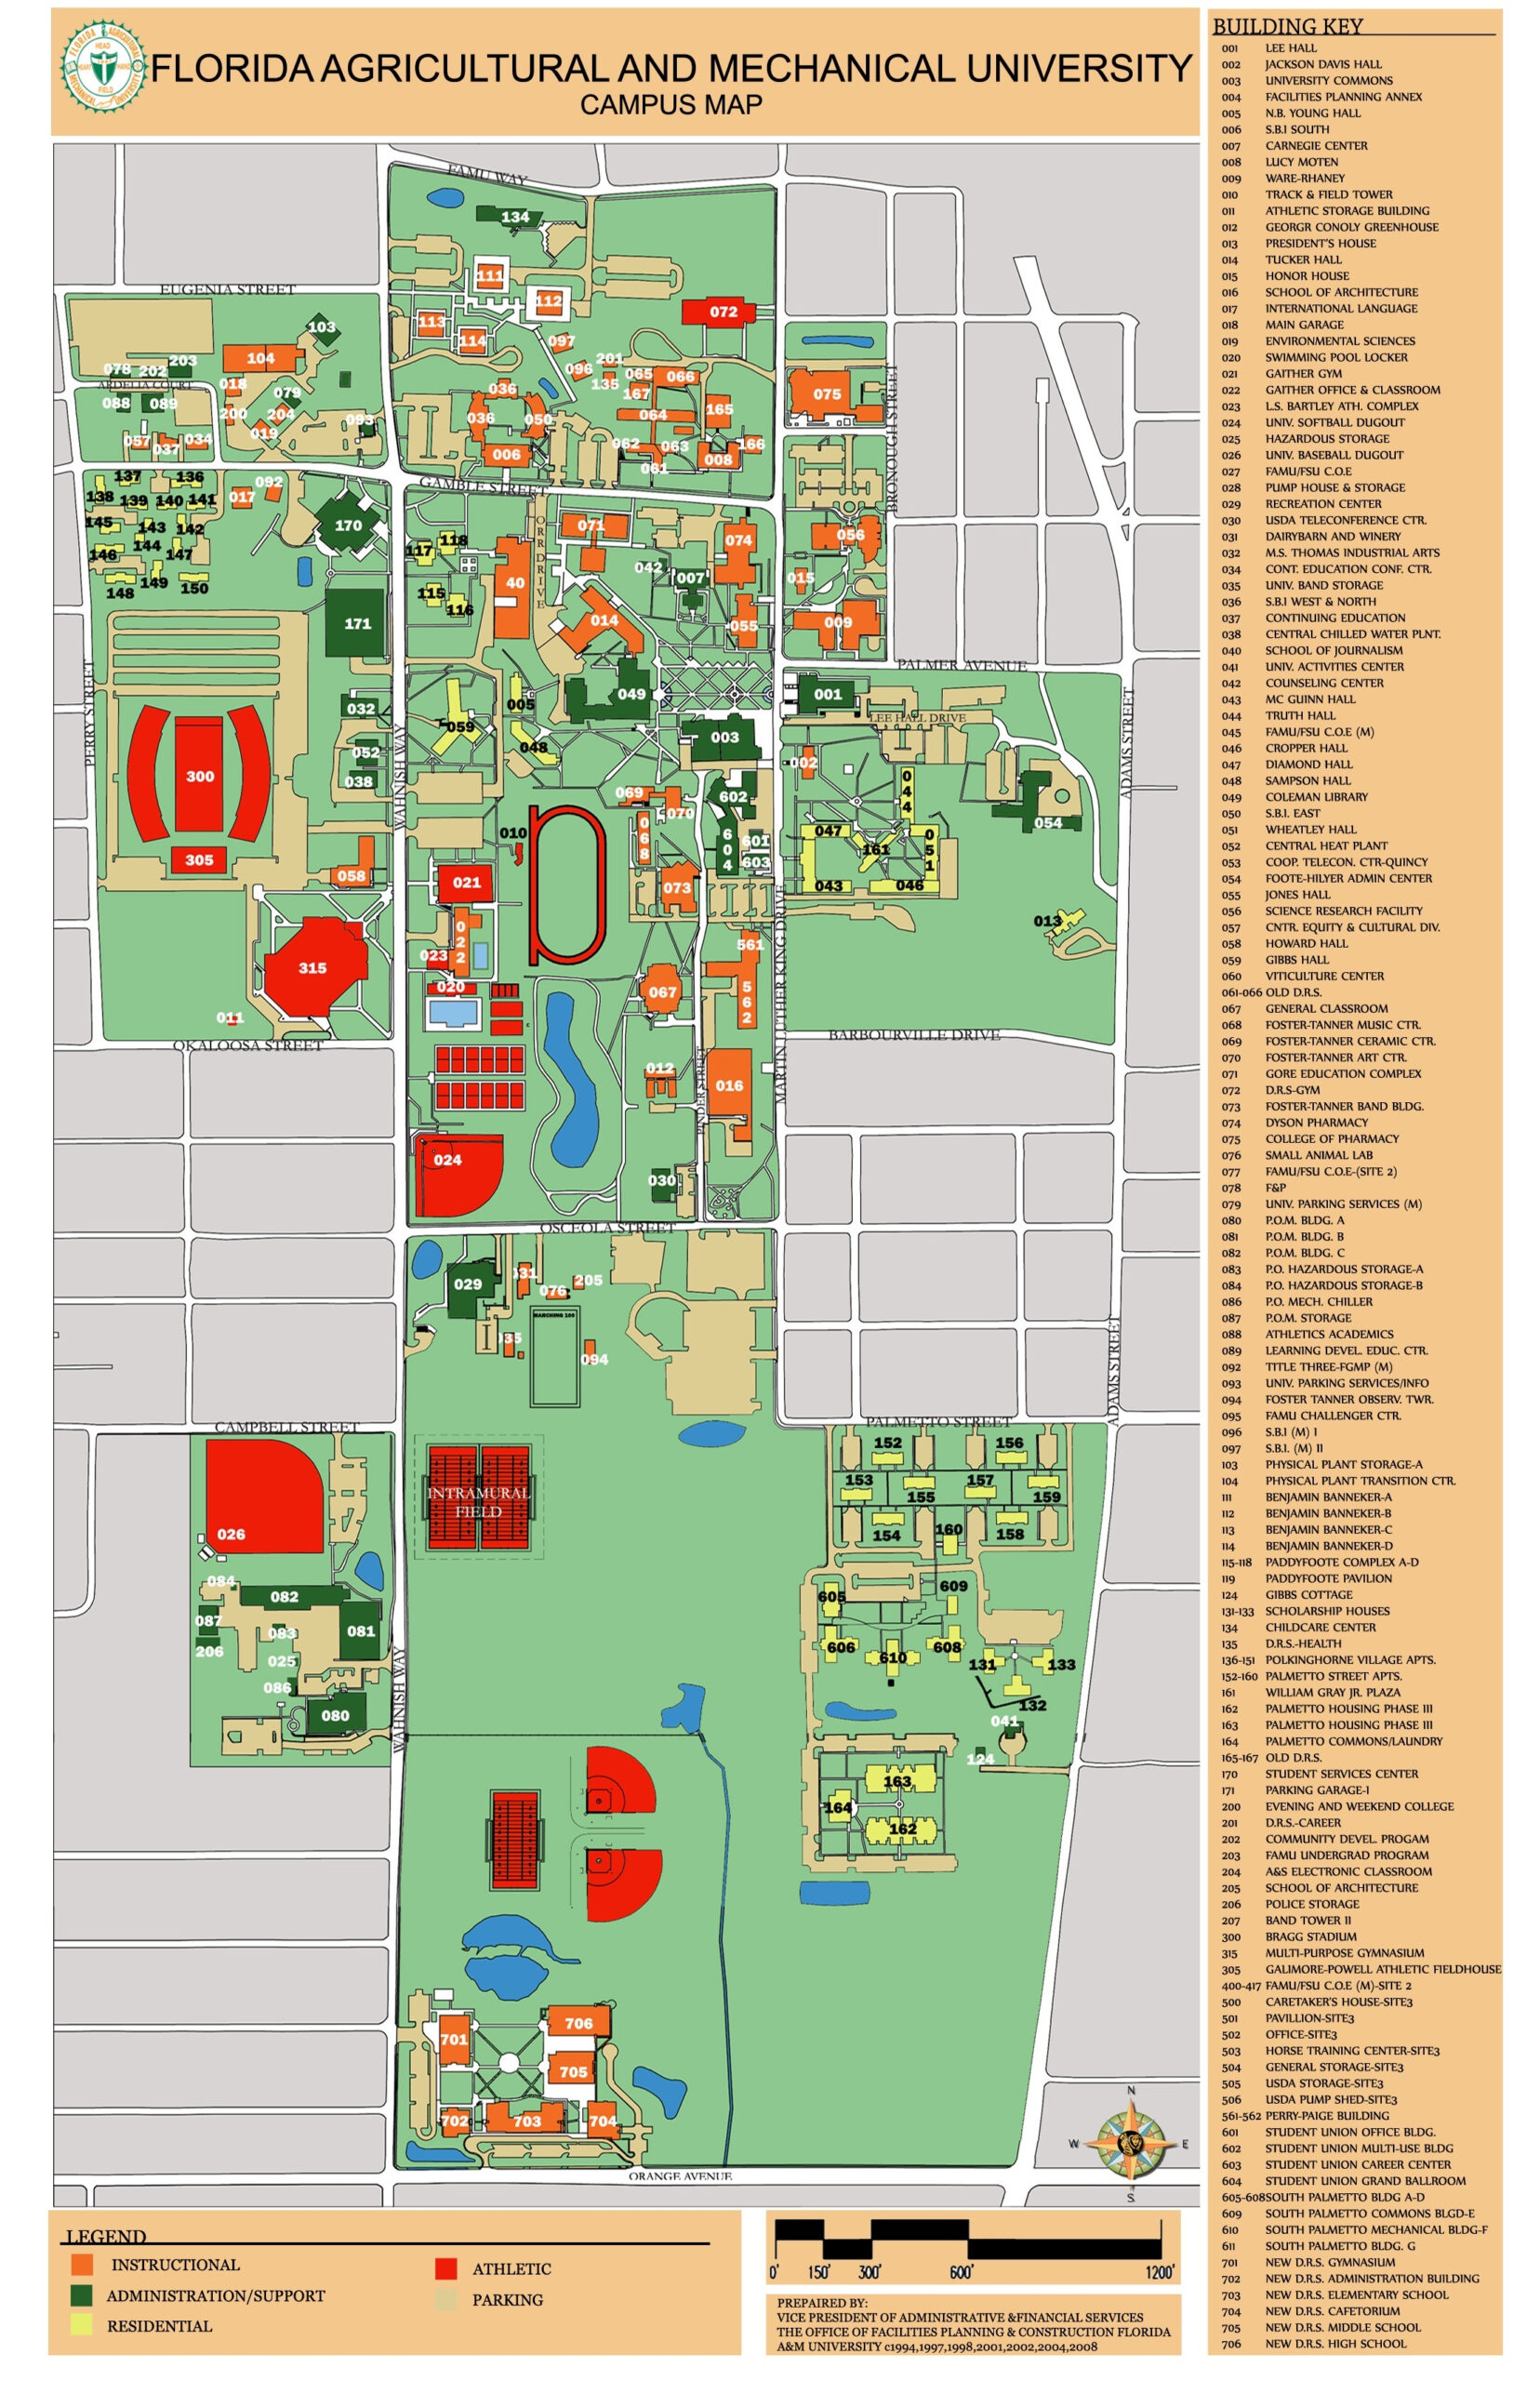 Florida Agricultural and Mechanical University | 2021